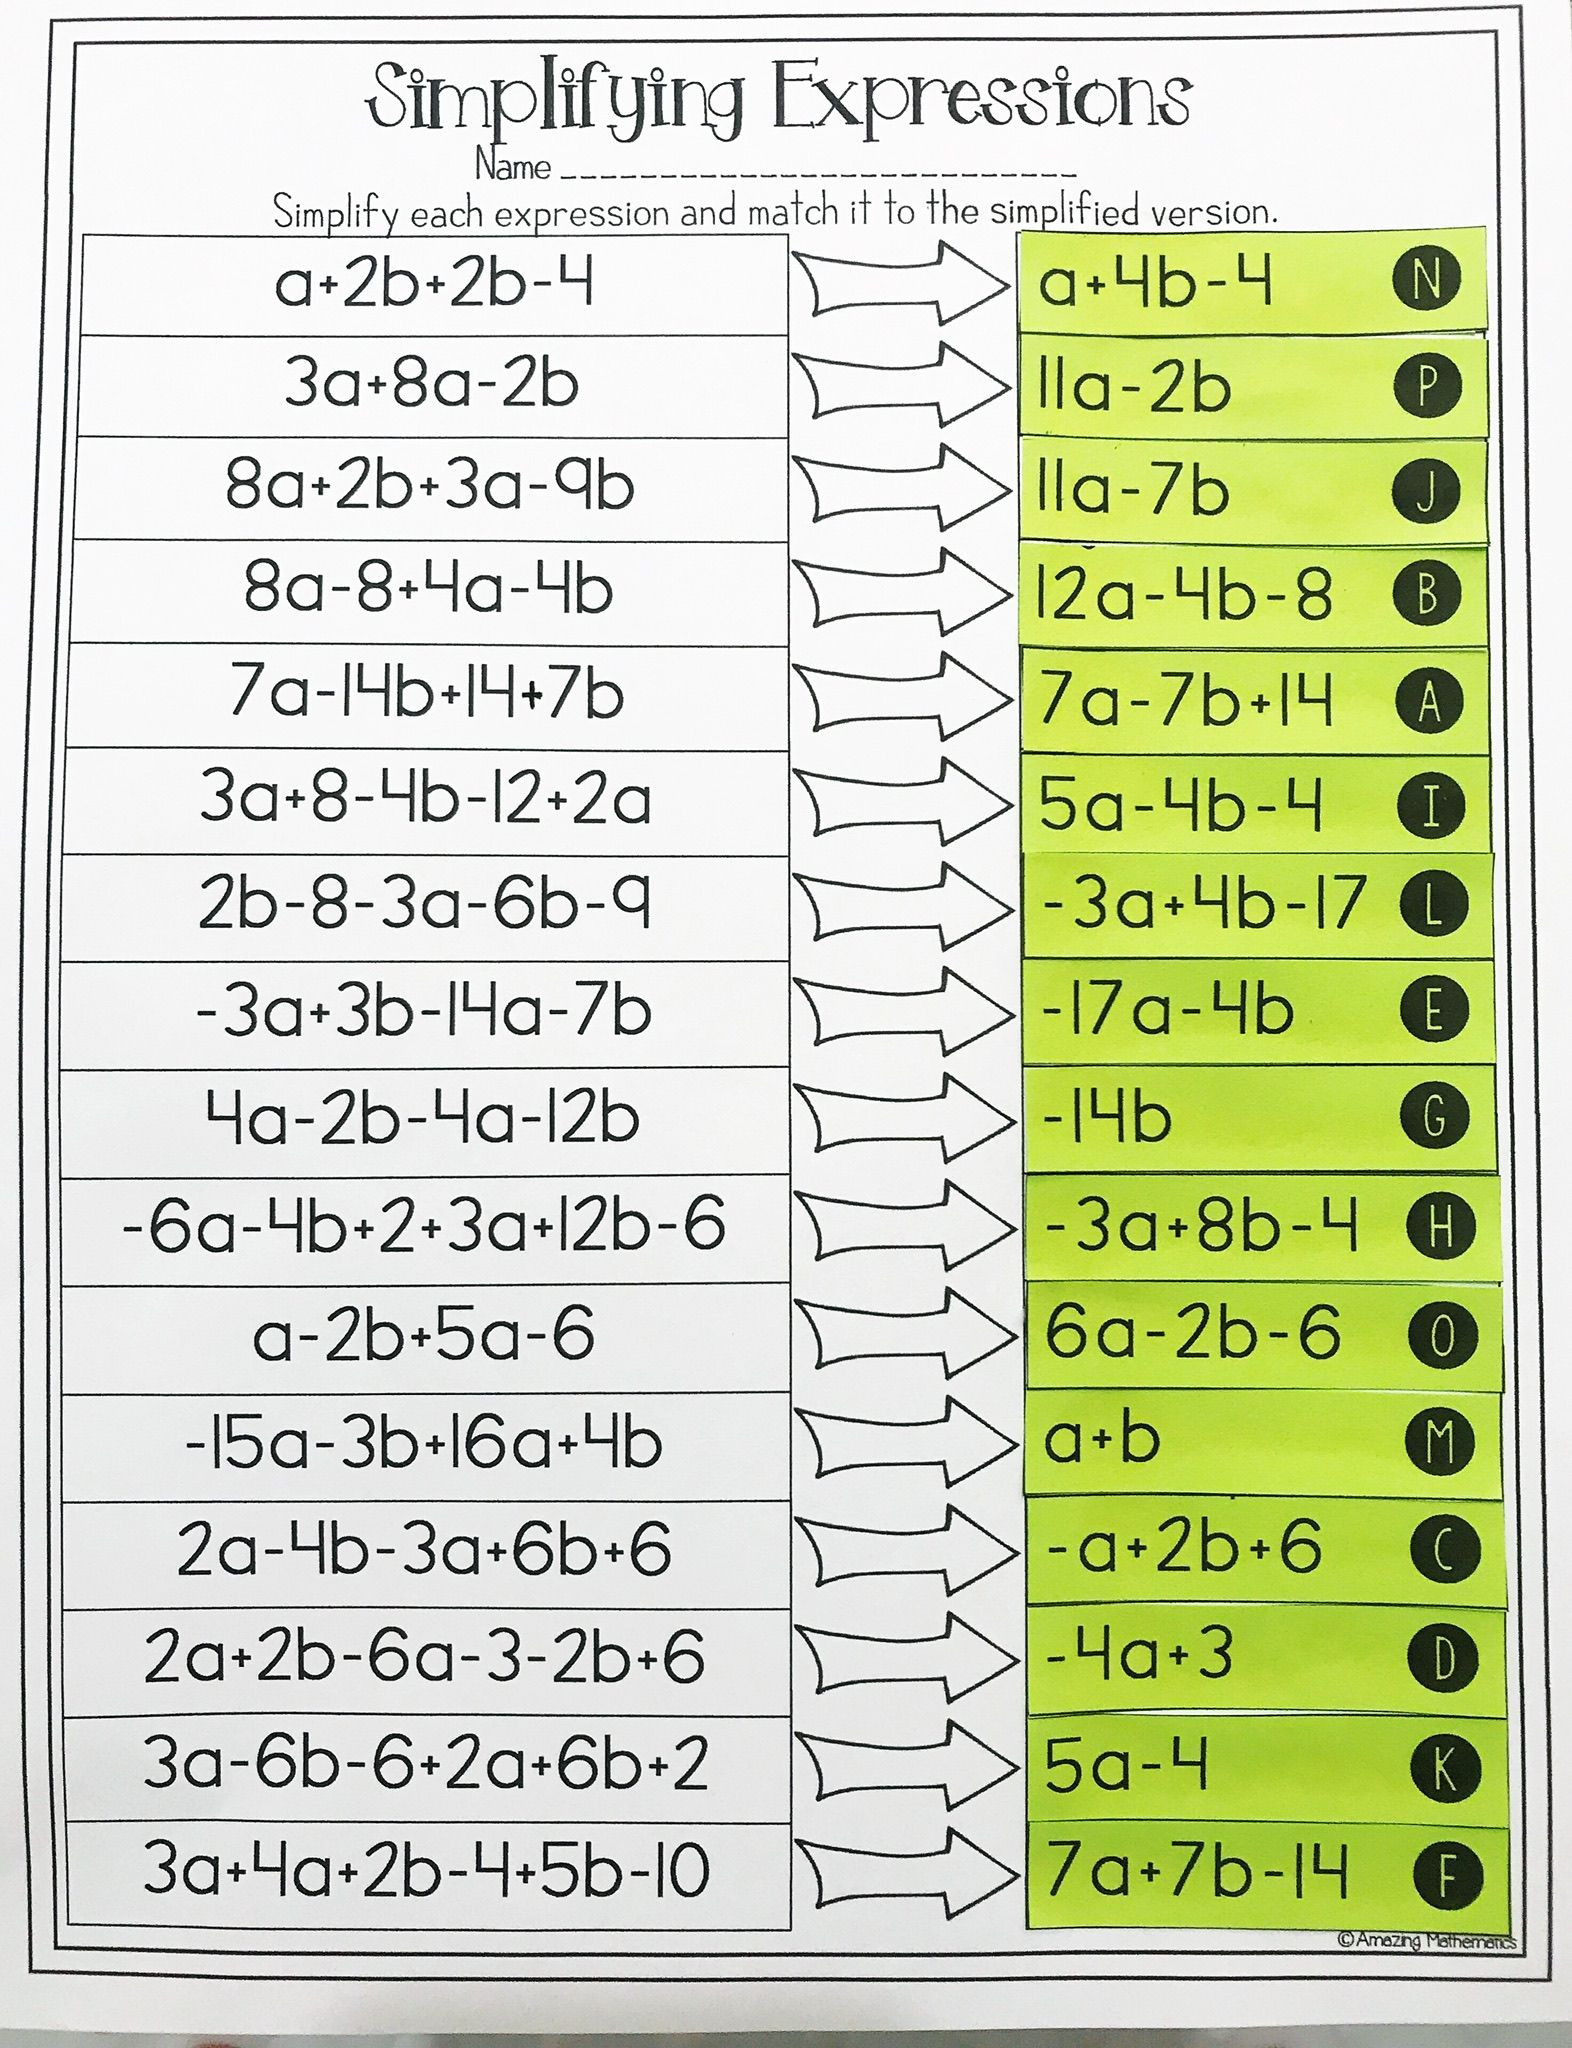 Simplifying Expressions Worksheet with Answers Bining Like Terms and Simplifying Expressions Matching